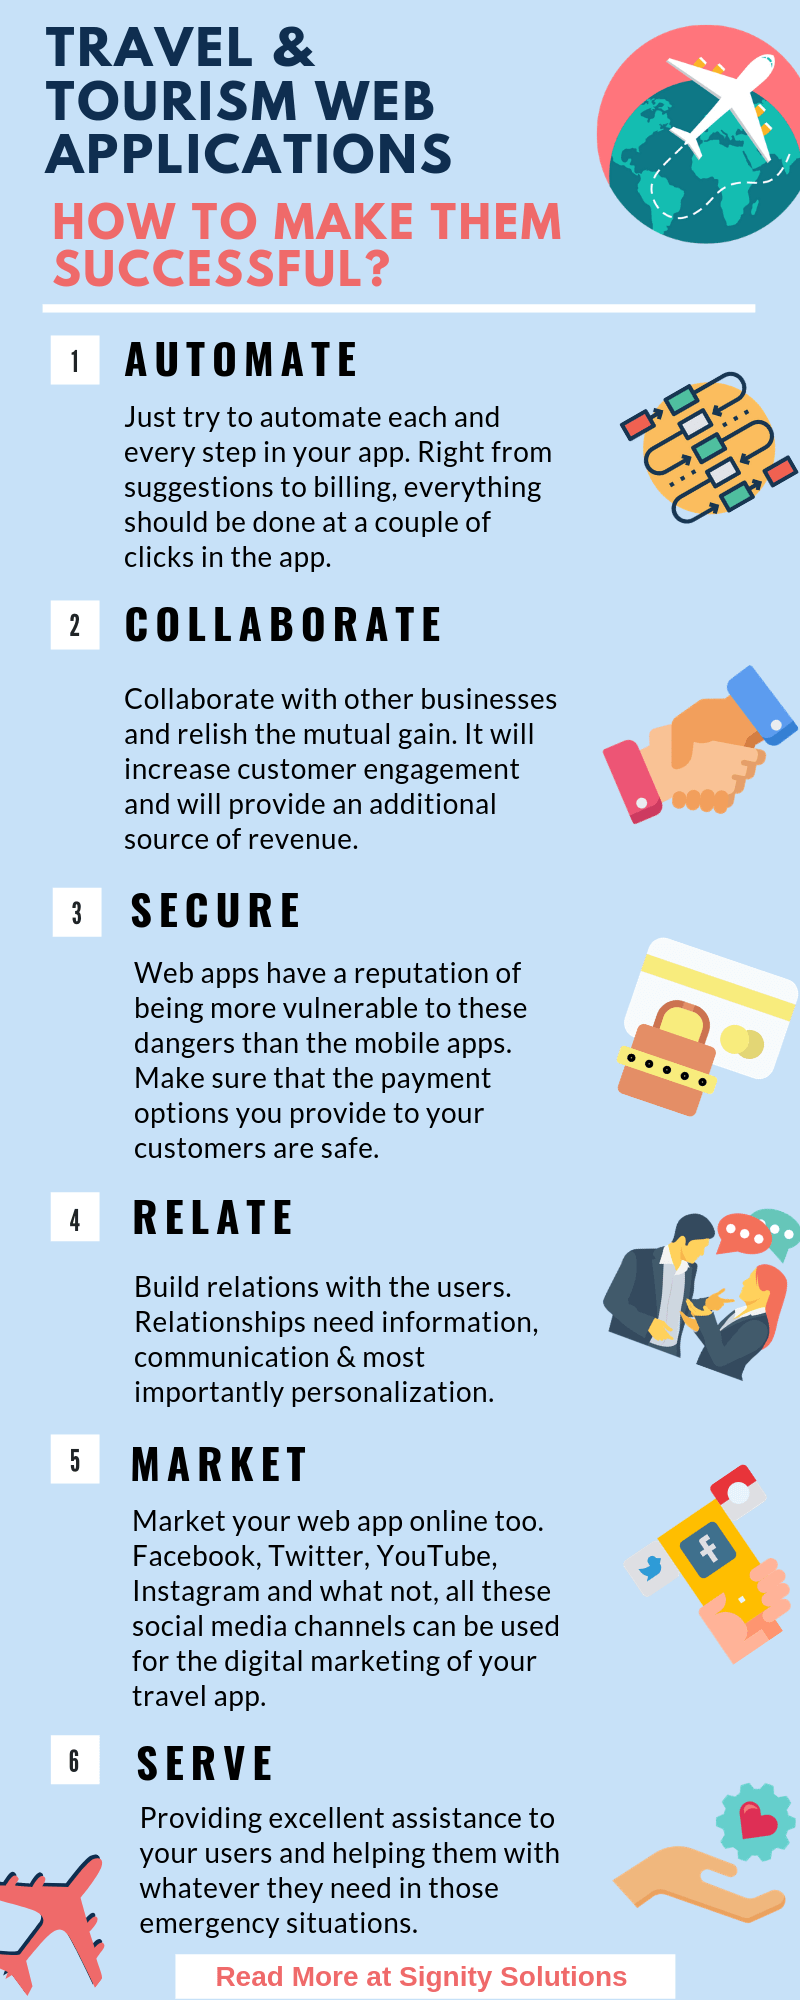 Travel-Tourism-Web Applications-Infographic-Signitysolutions